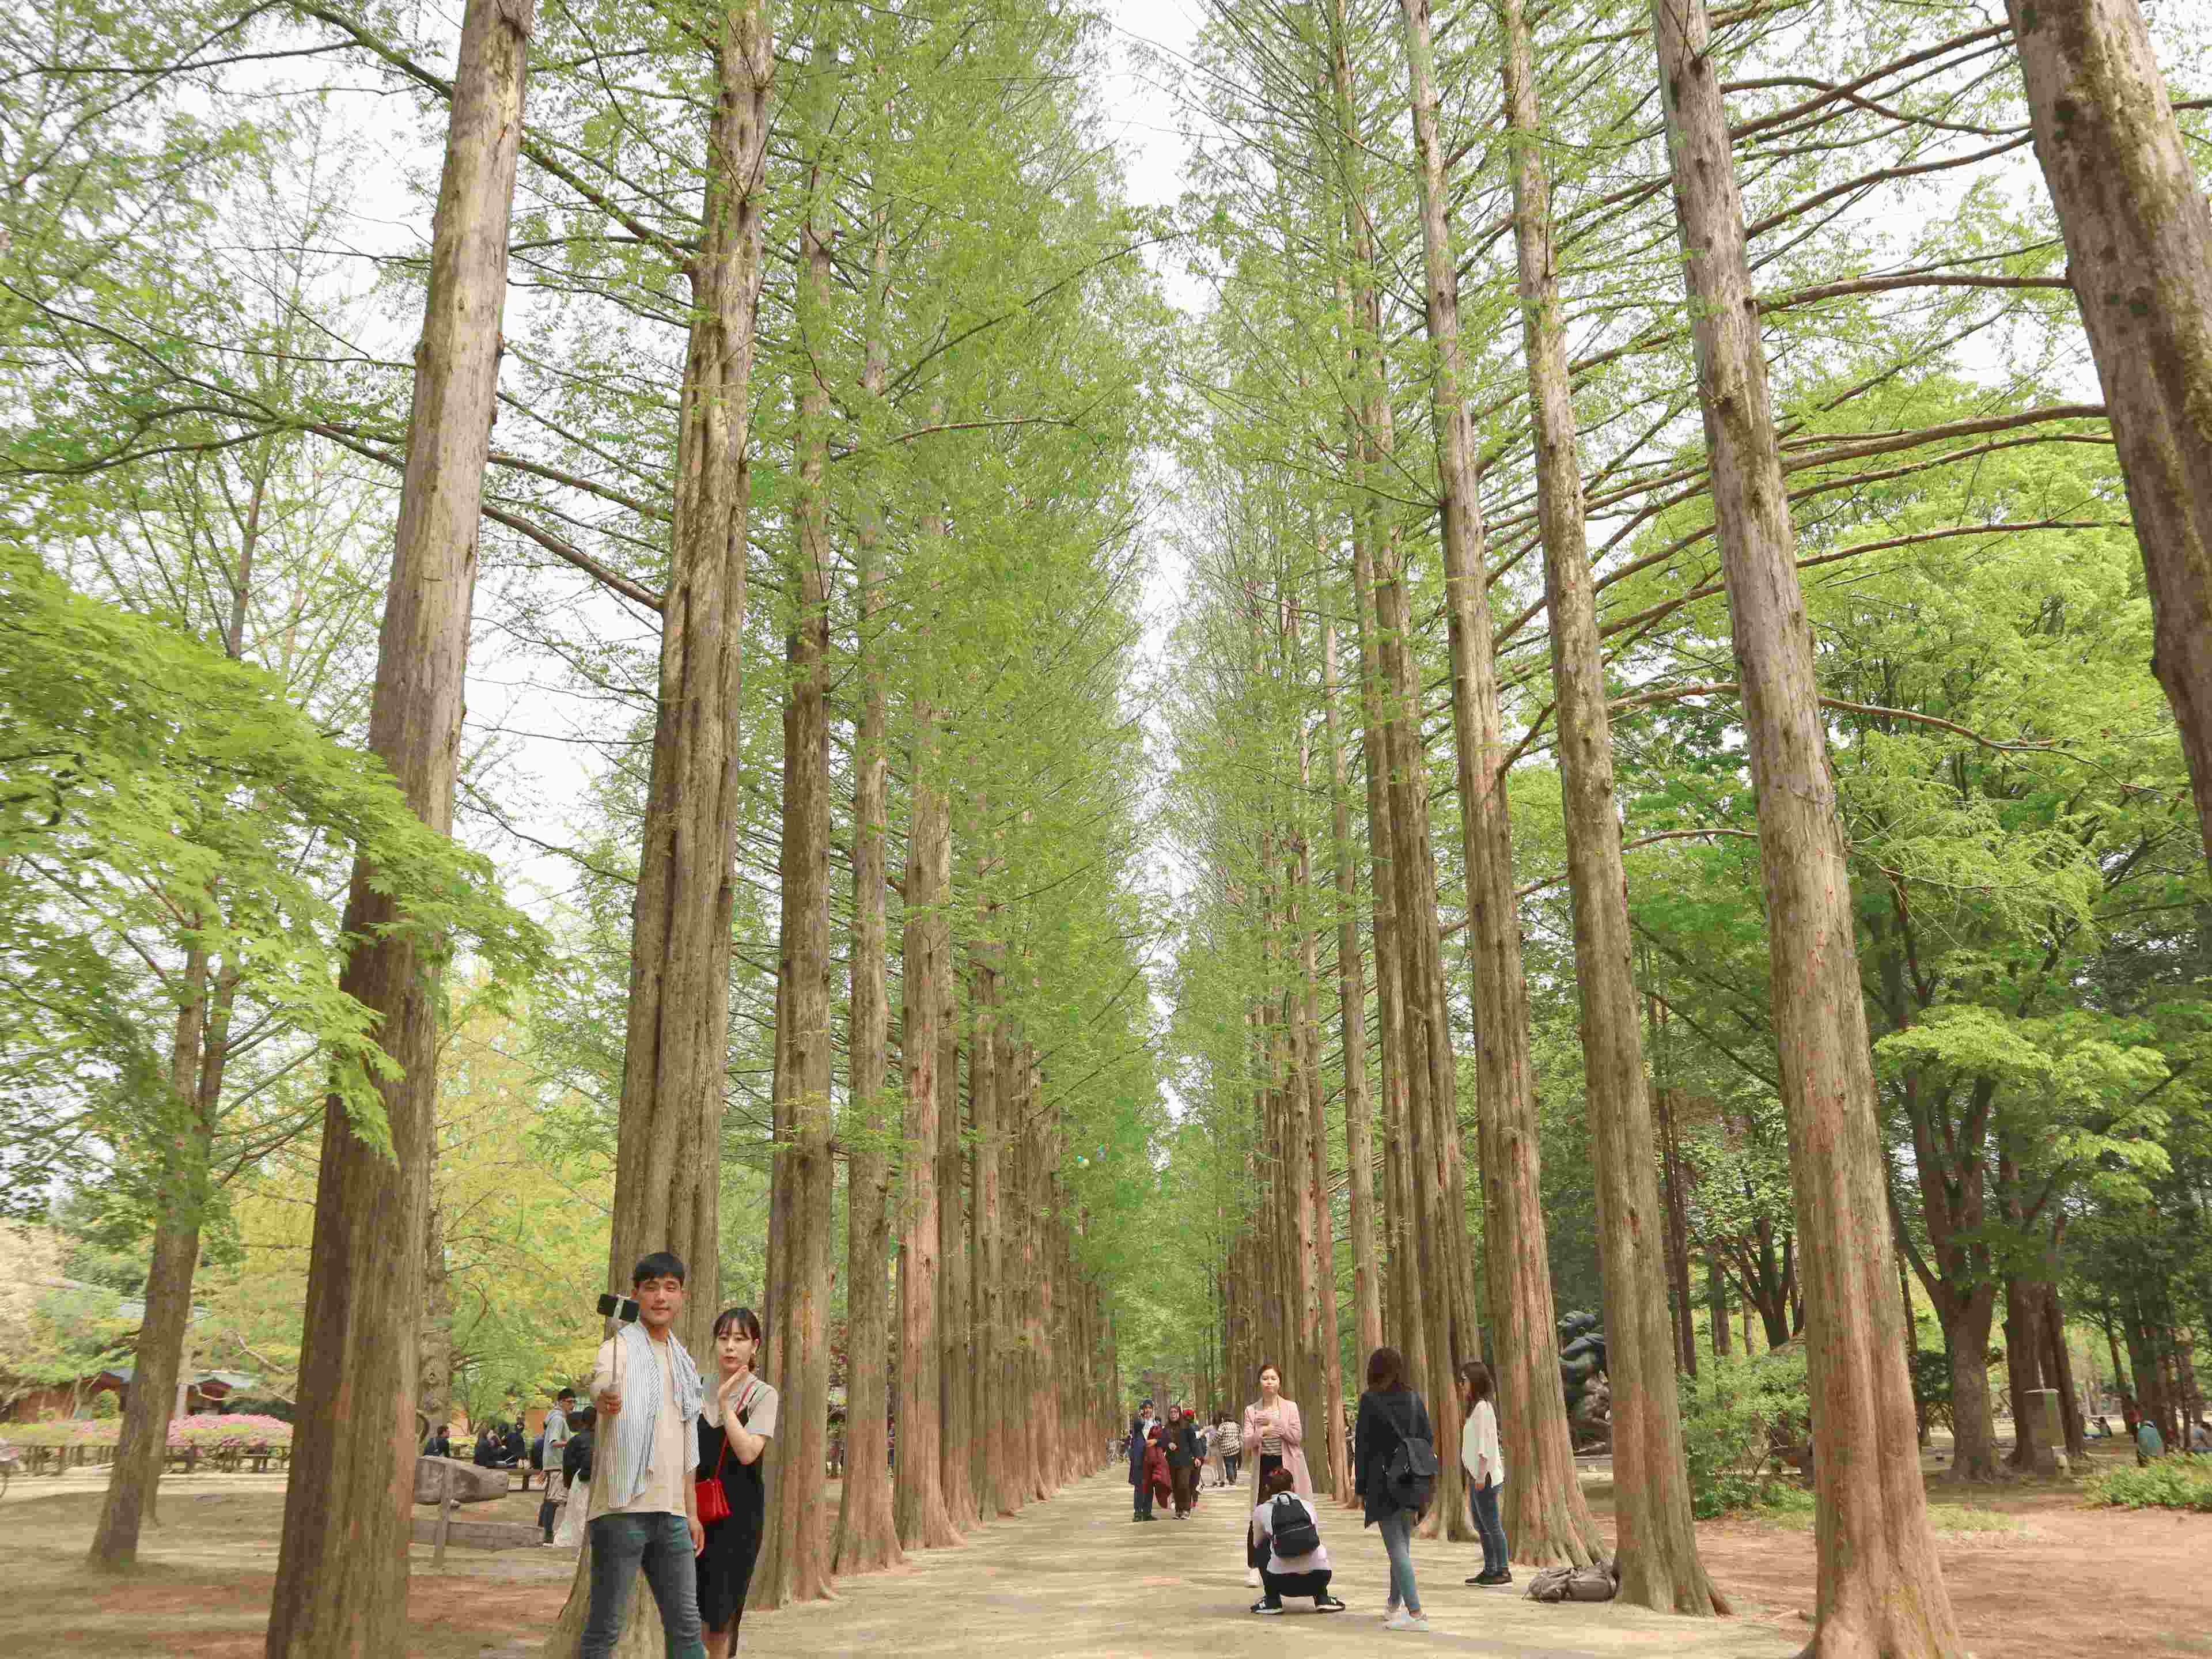 nami-island-south-korea-metasequoia-coffeehan